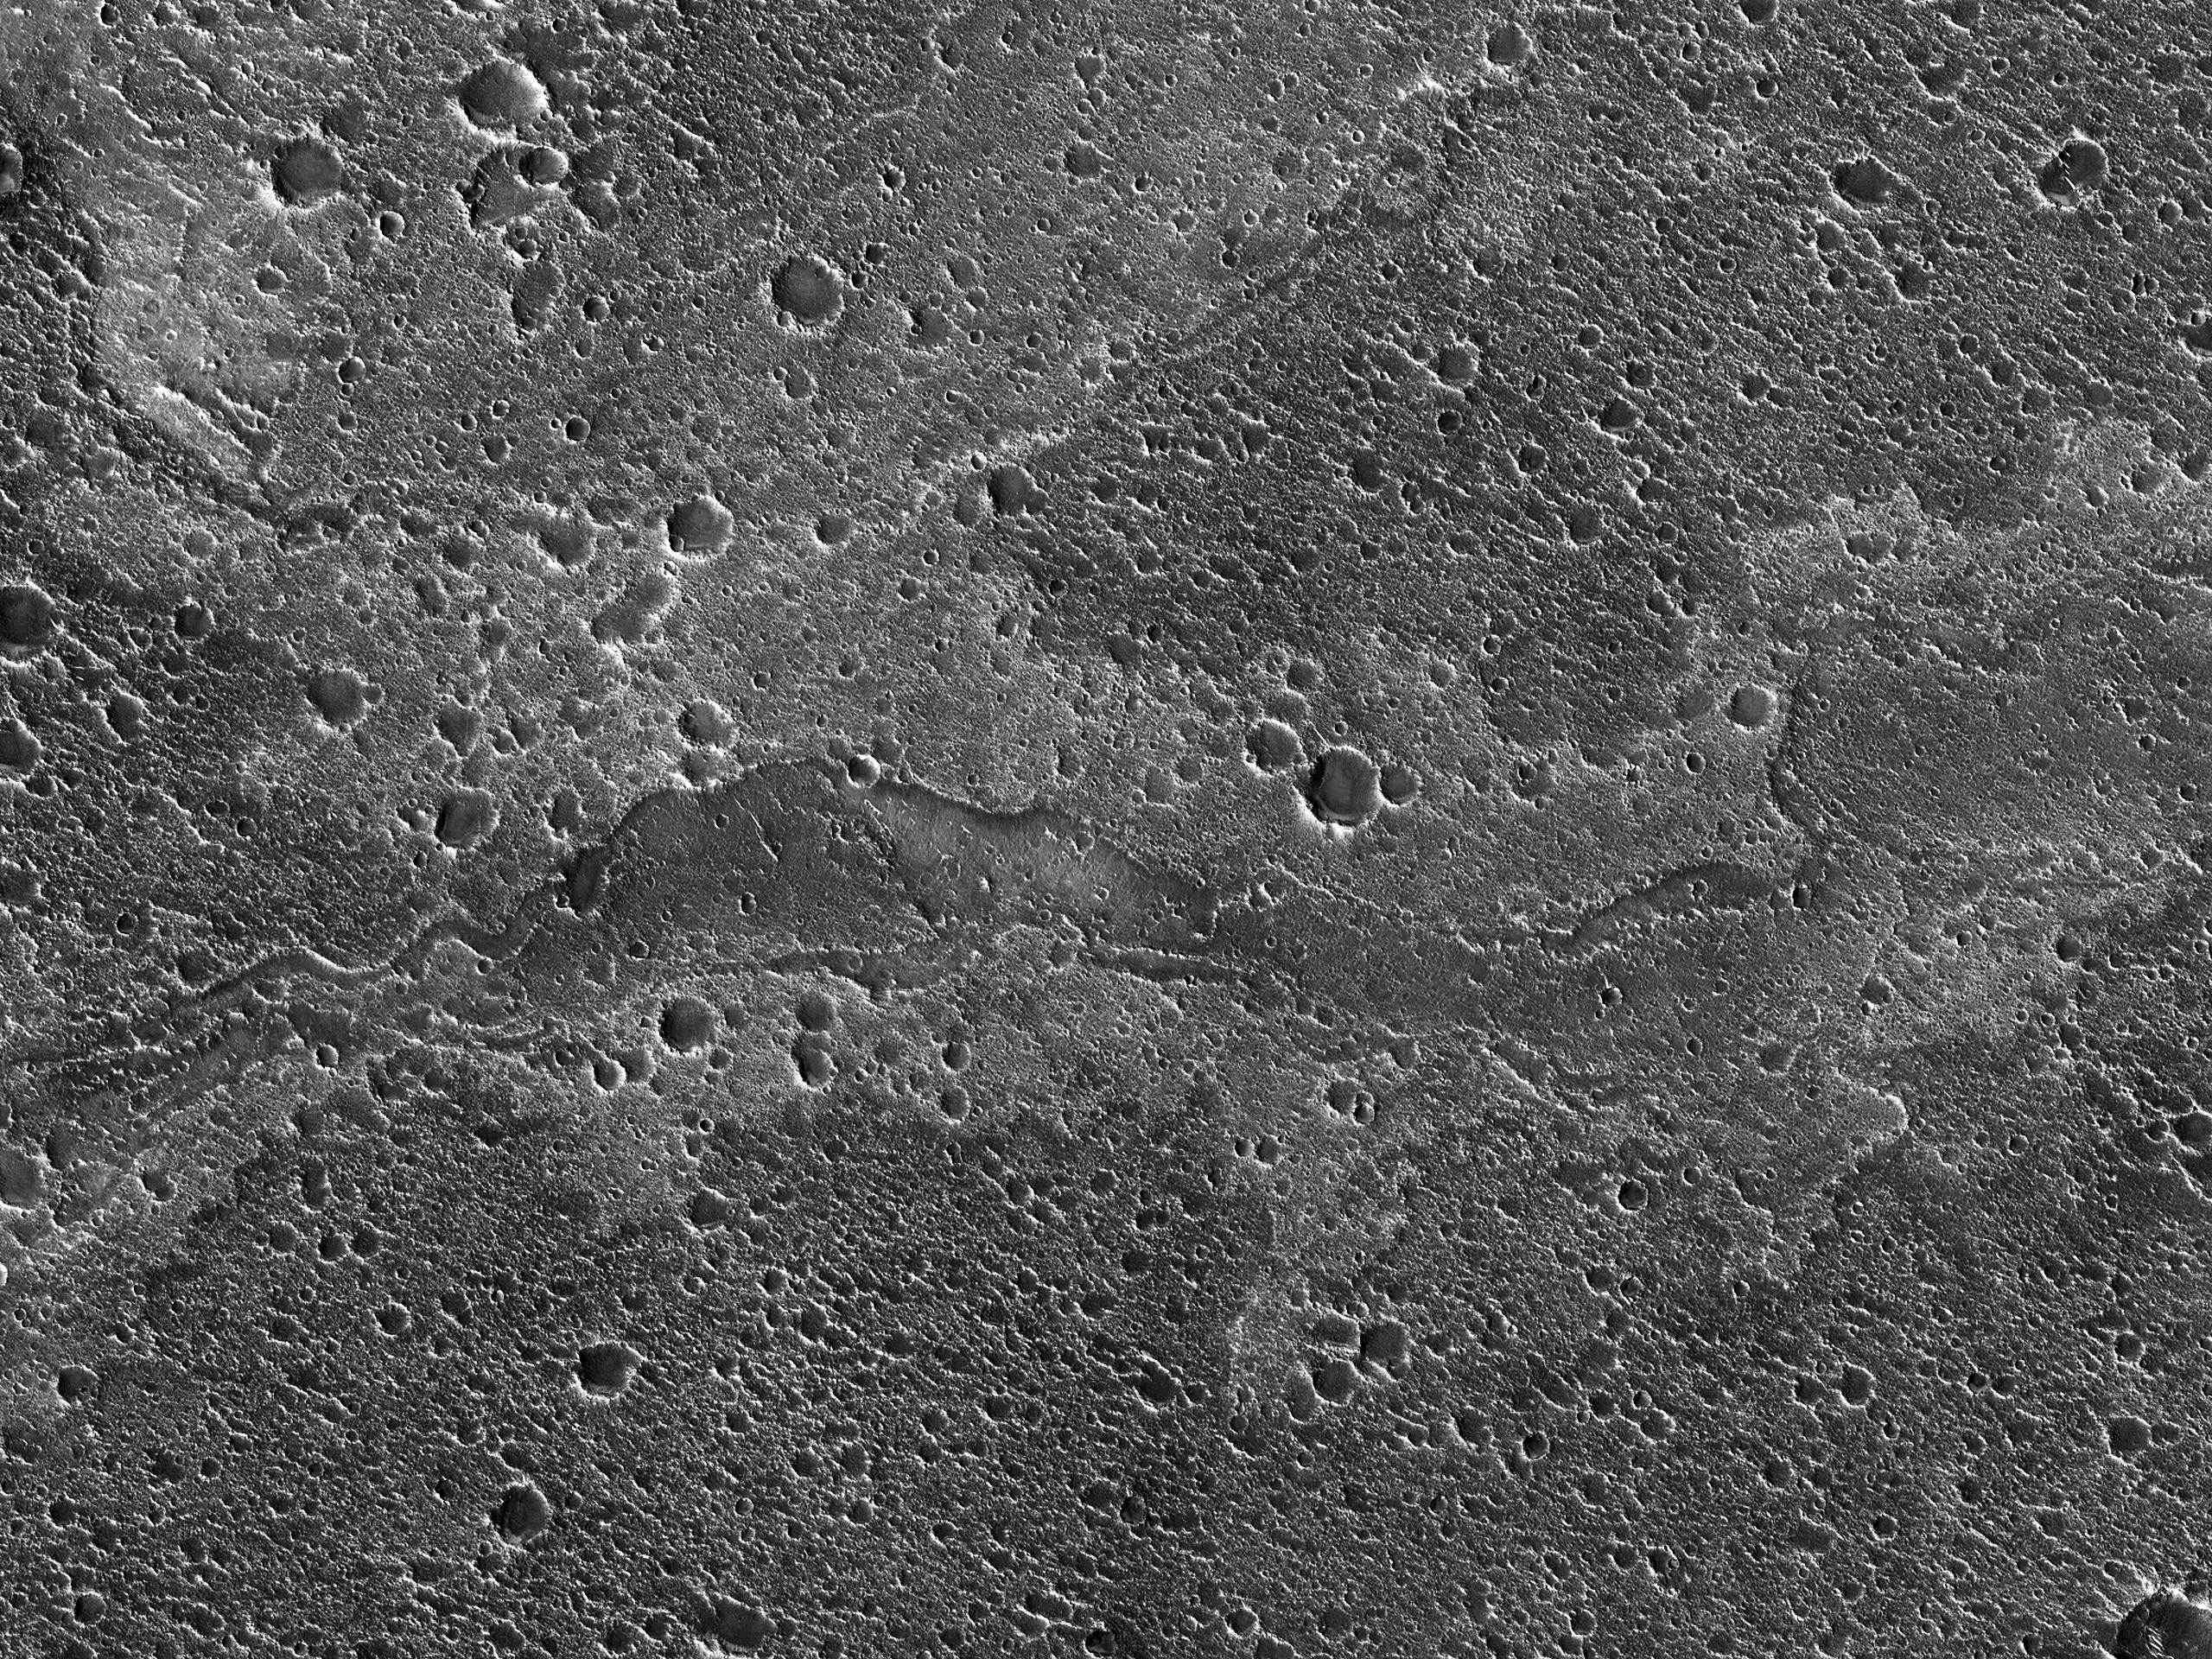 A Flow-Like Feature within Chryse Planitia